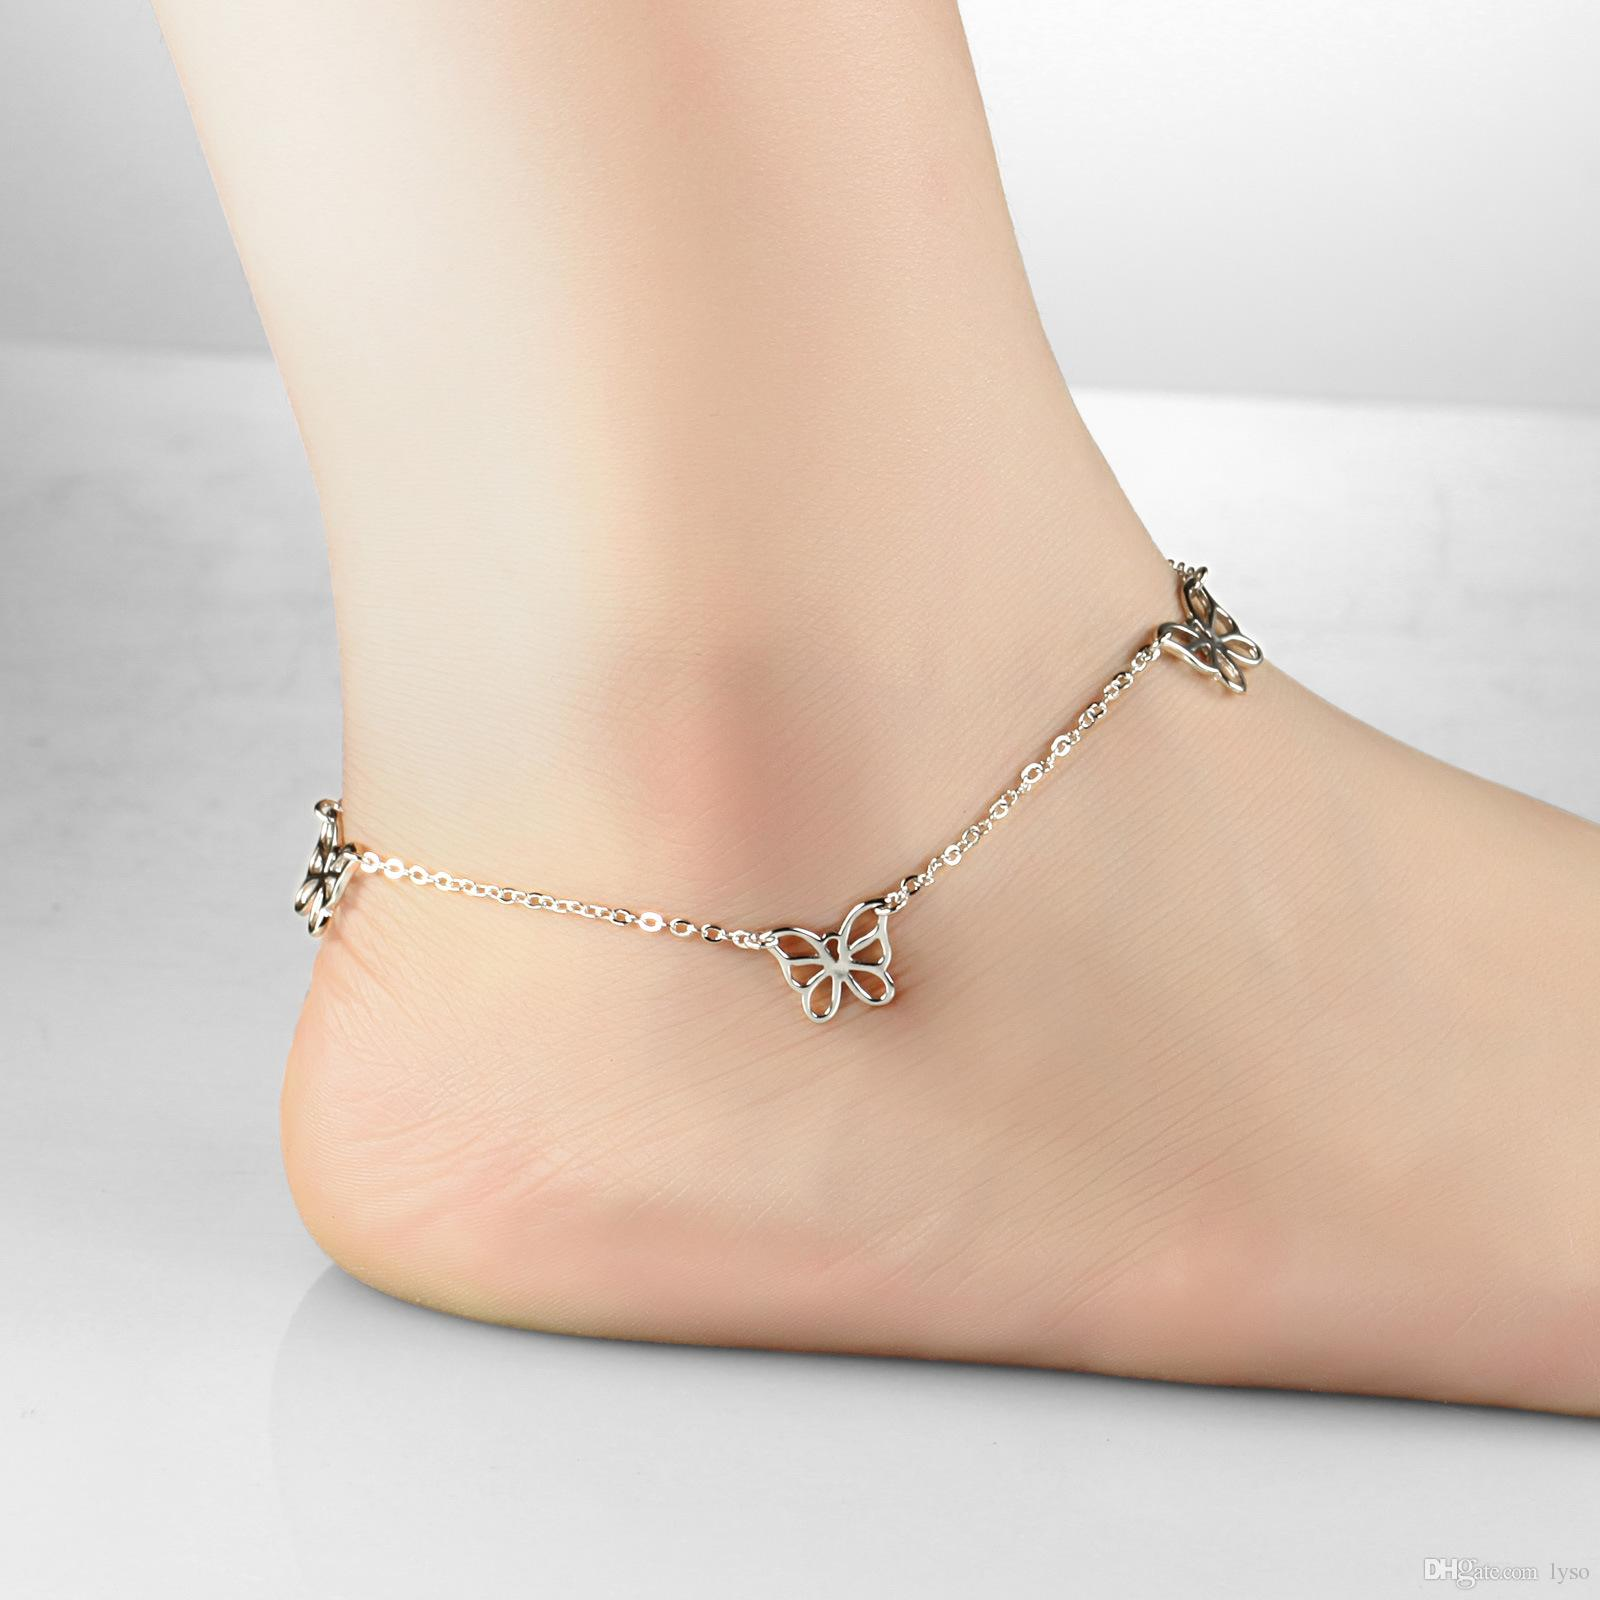 silver all light anklet necklace sizes gold flat nec long italian cable plated sterling chain